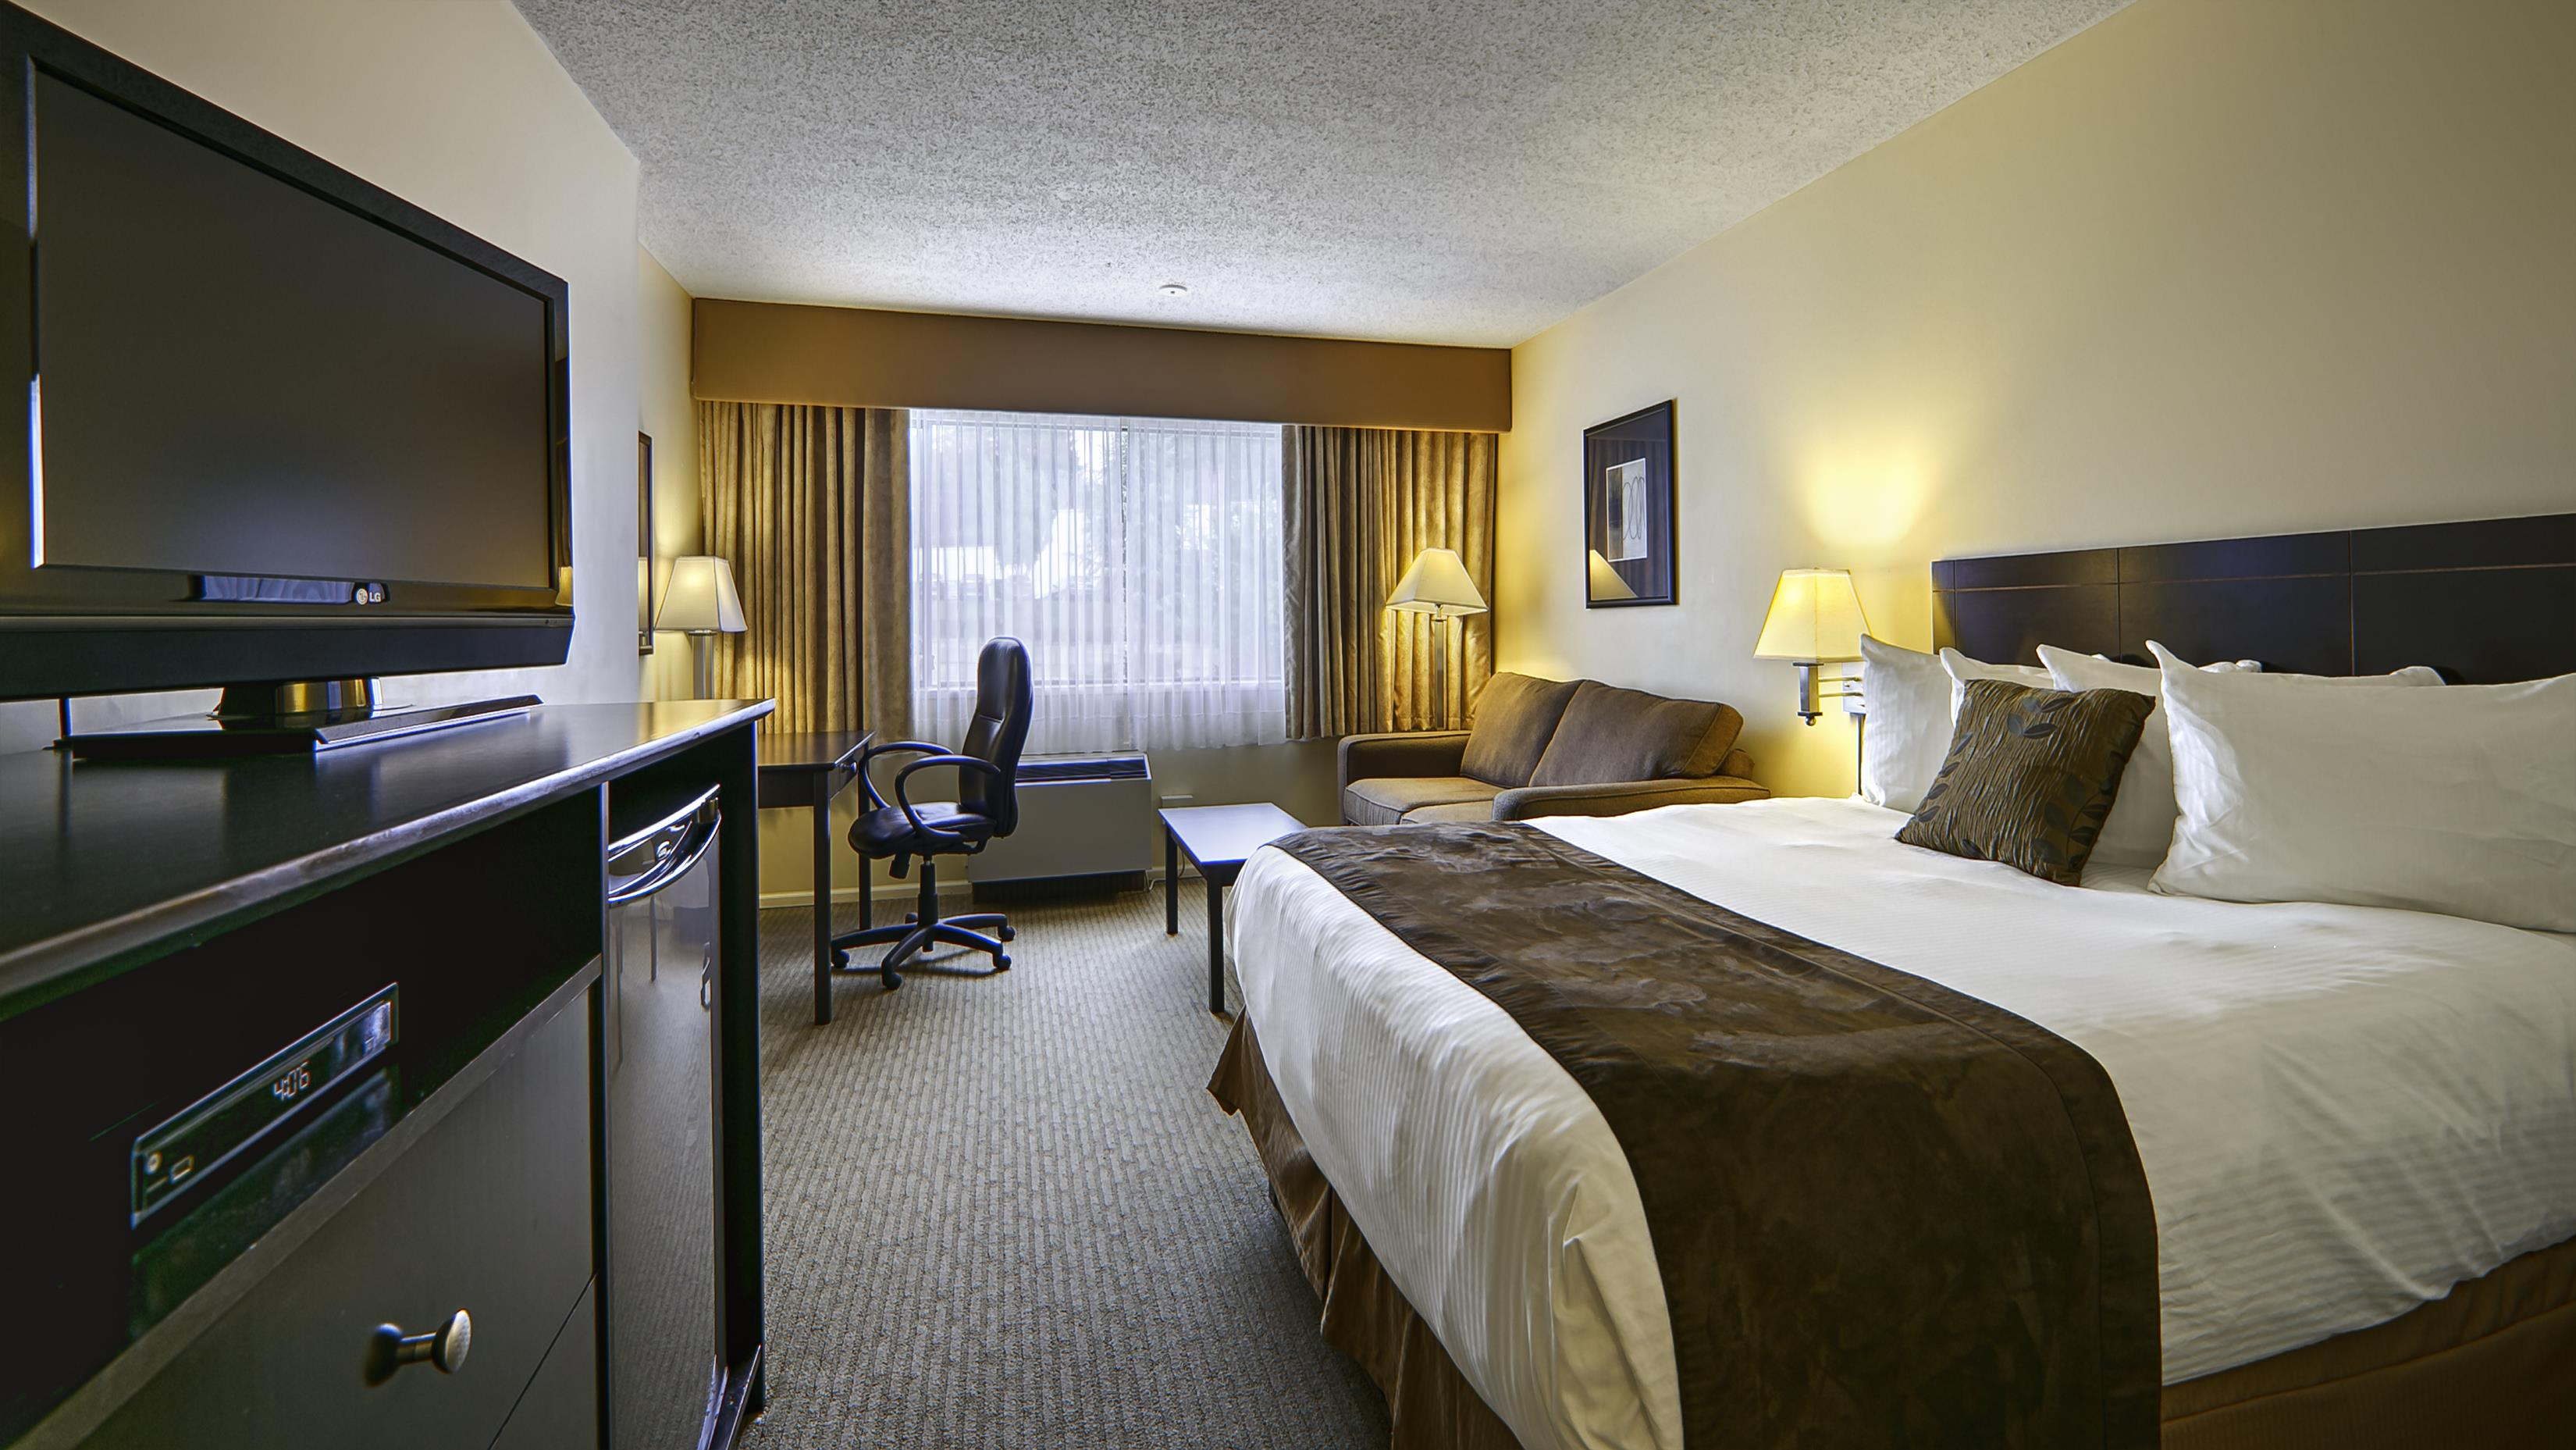 Best Western Cowichan Valley Inn in Duncan: King Guest Room